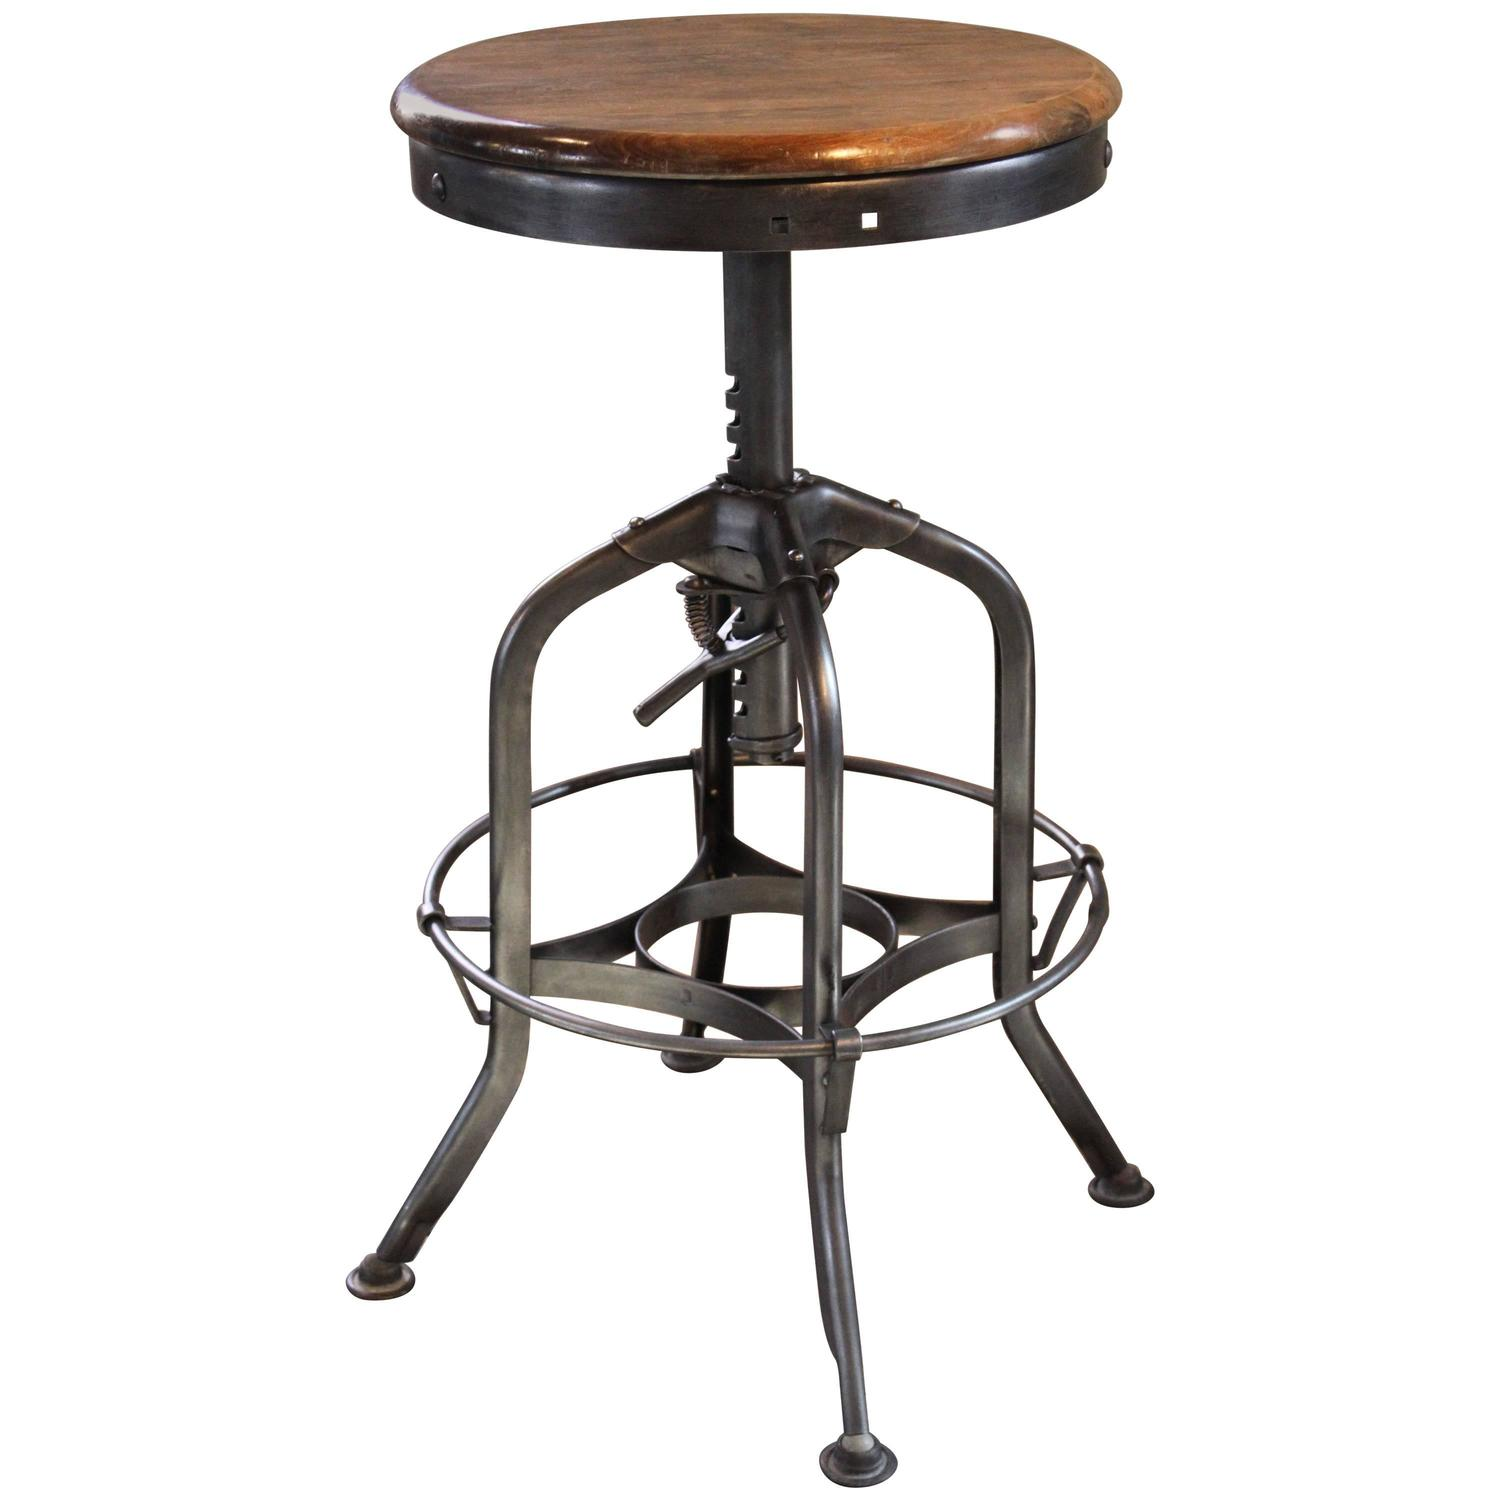 stools saddle stool p swivel backless gray non rustic bar hillsdale ottomans furniture